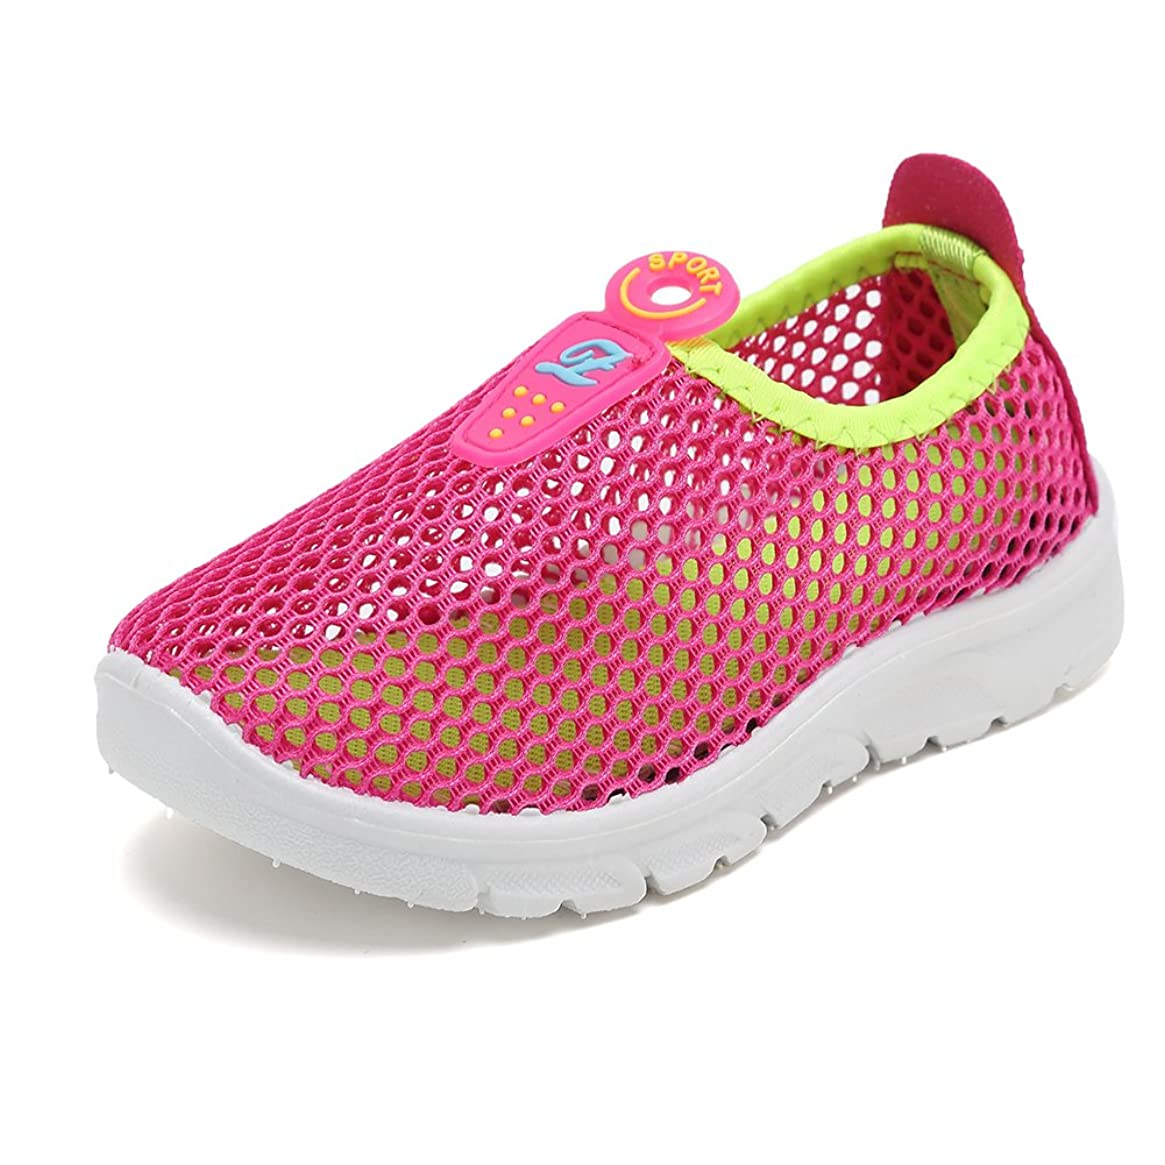 CIOR Toddler Kids Water Shoes Breathable Mesh Running Sneakers Sandals for Boys Girls Running Pool Beach,U118STWX002,Pink,32